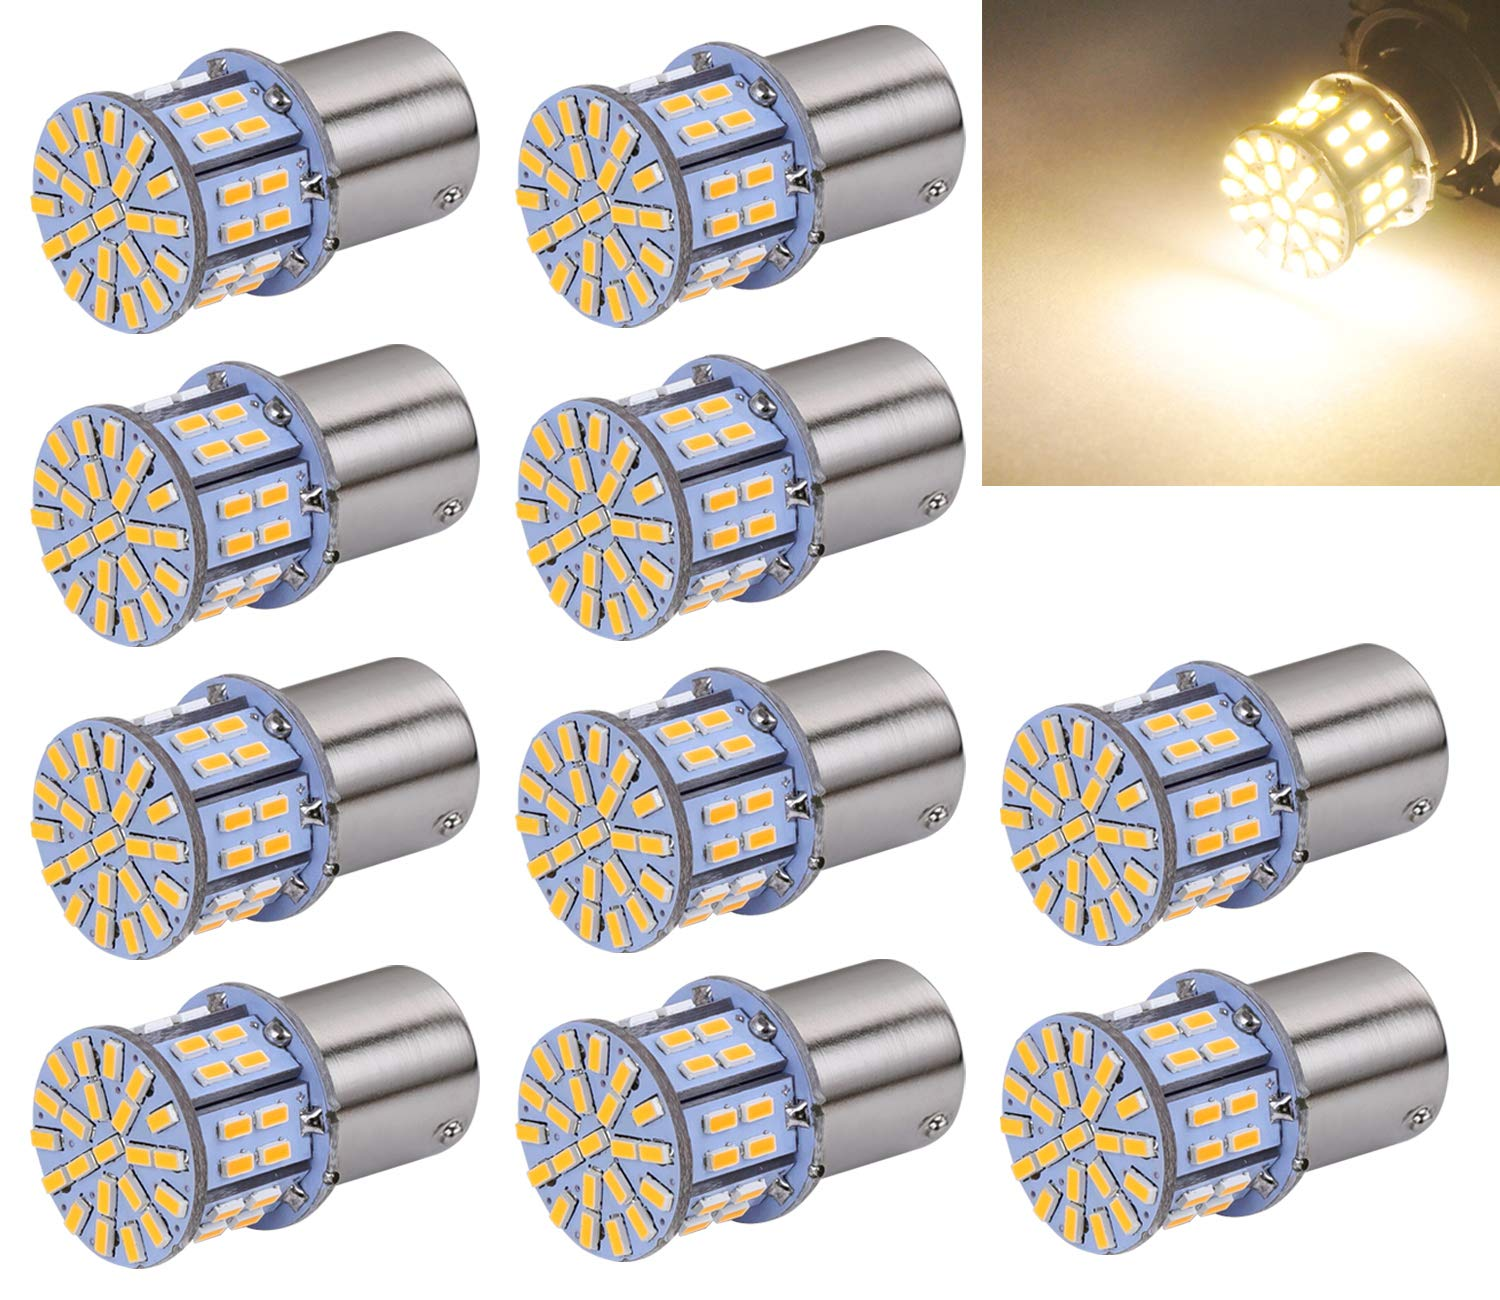 Aucan Super Bright 1156 1141 1003 1073 BA15S 7506 S25 P21W 50-SMD 3014 LED Replacement Light Bulbs for RV Indoor Lights Warm White (pack of 10) Aucanled